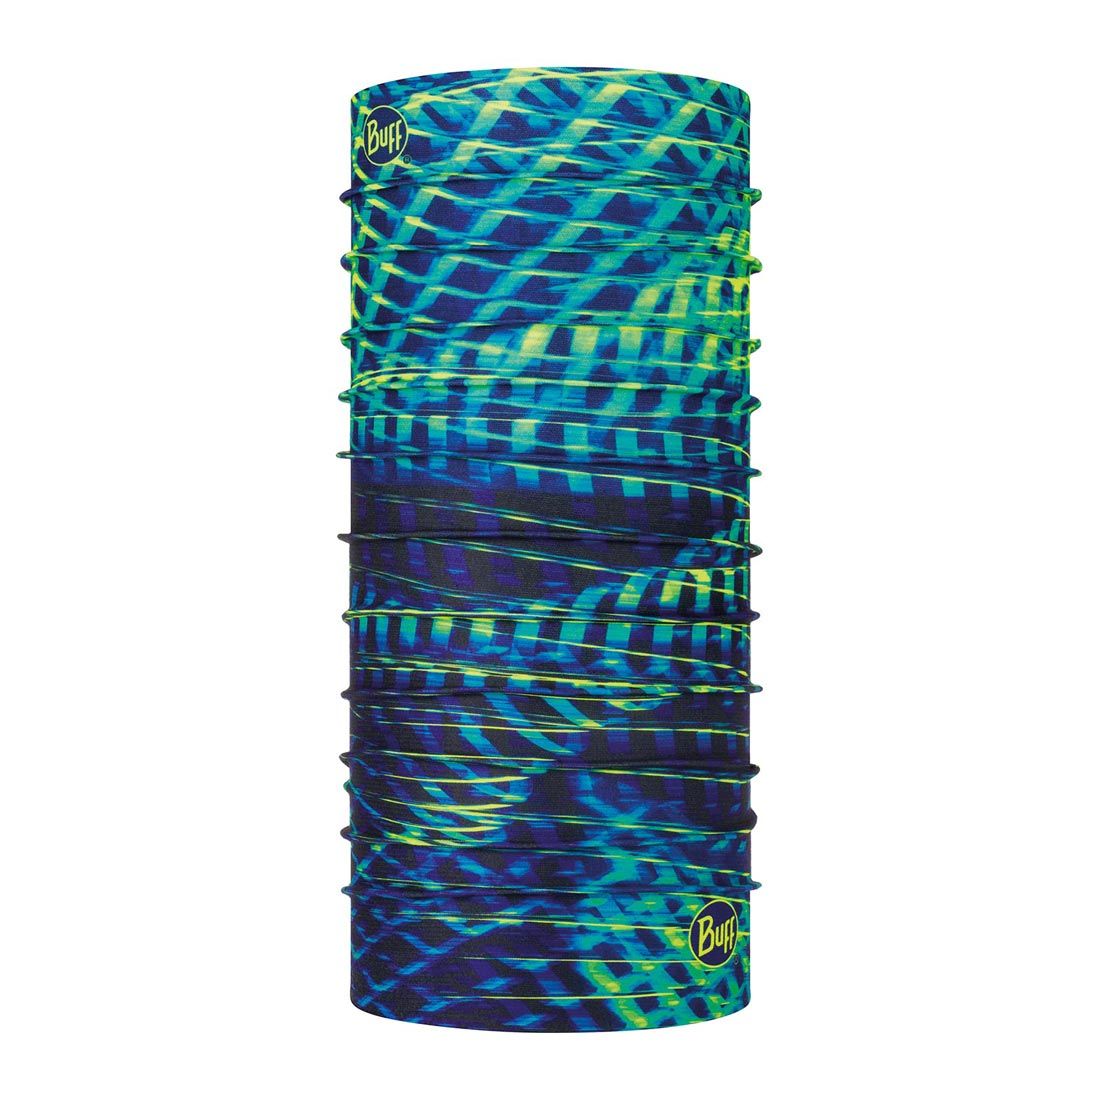 Le tour de cou Buff CoolNet UV+ Sural Multi.